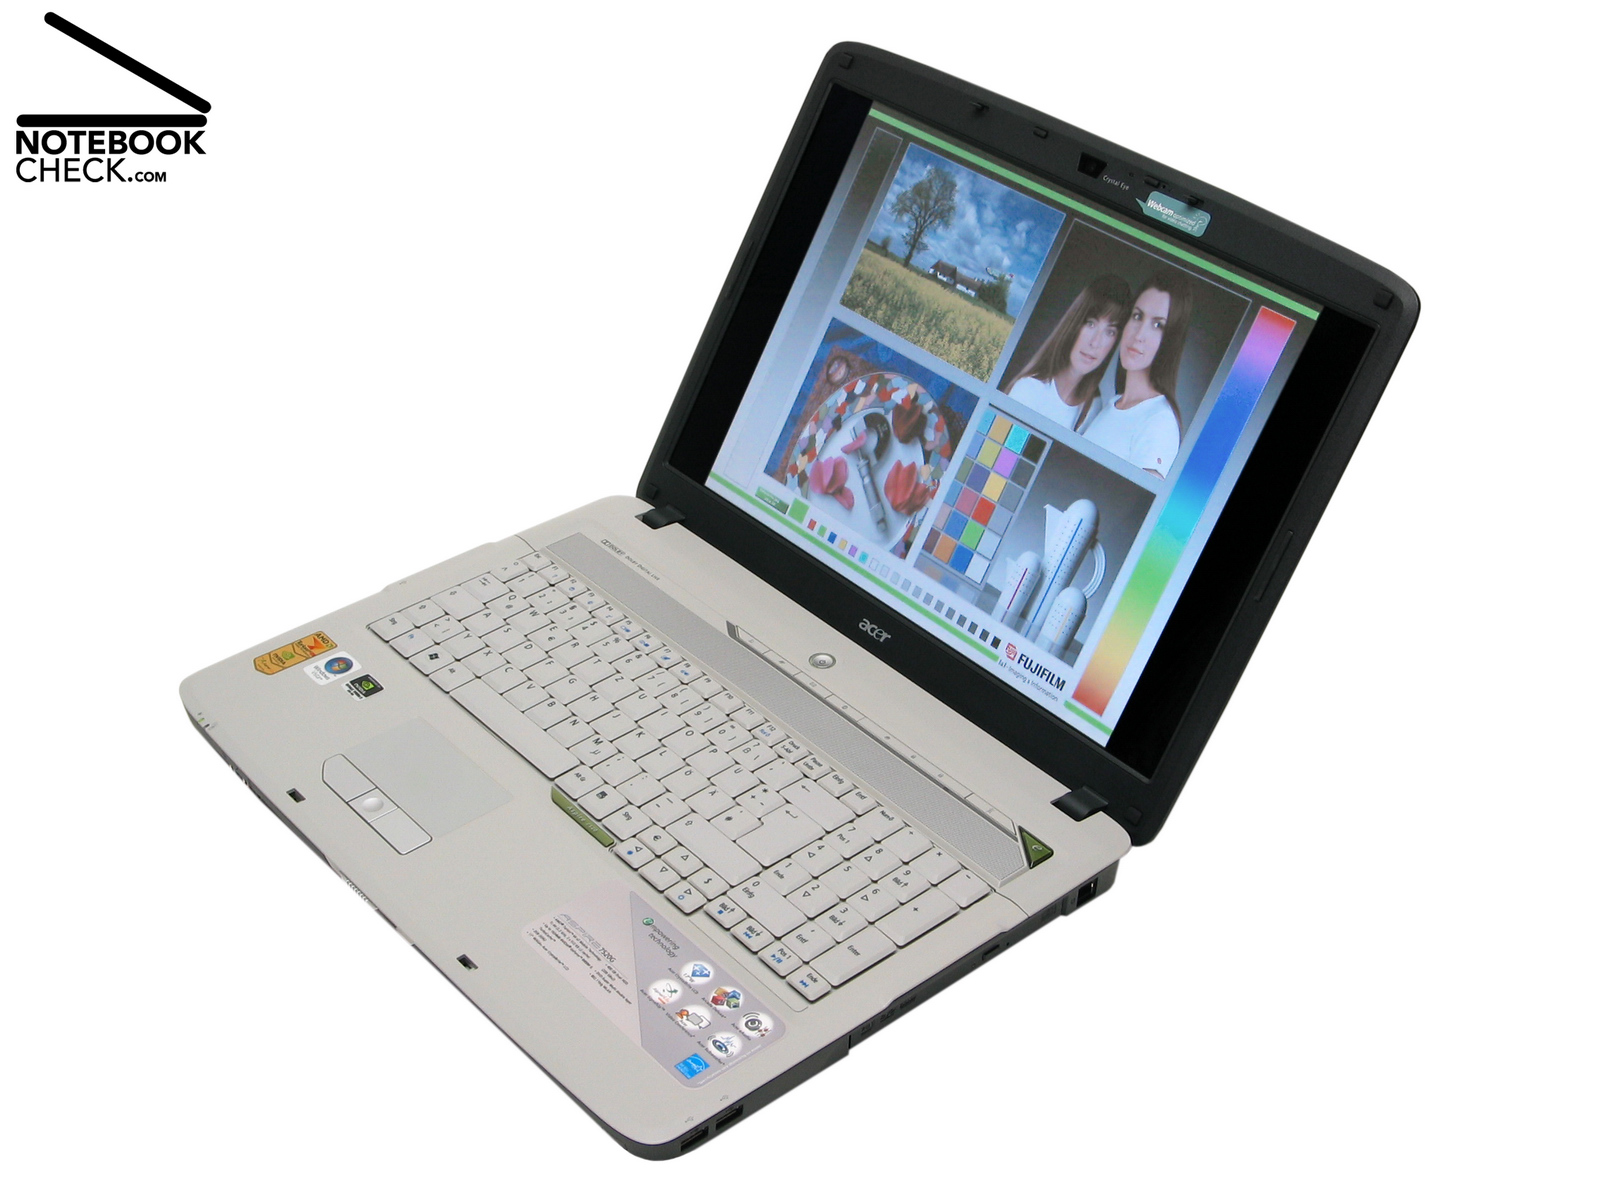 ACER ASPIRE 7520-5115 DRIVERS DOWNLOAD